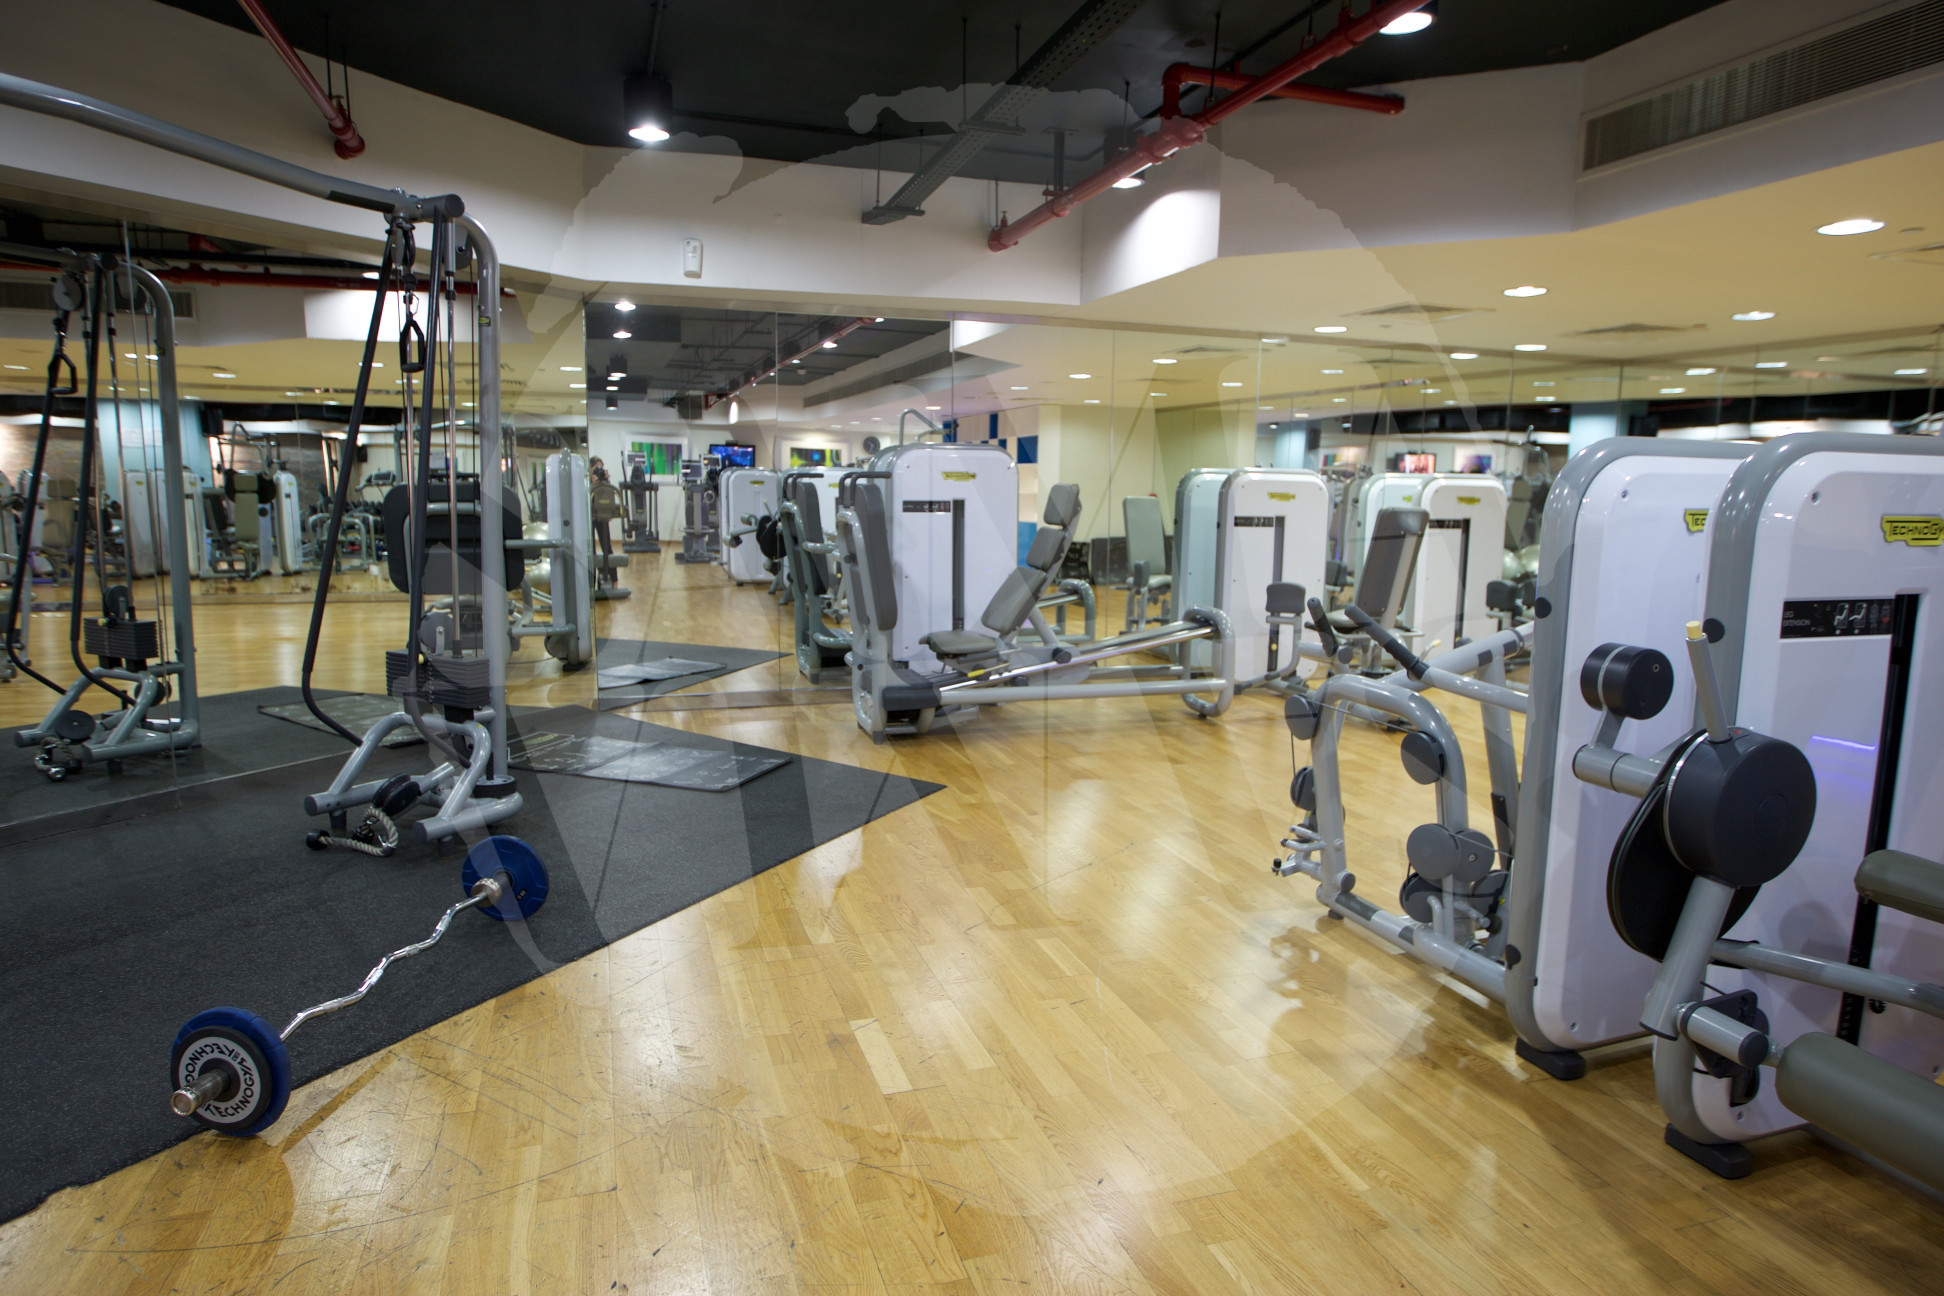 ... well-equipped gym to visit...!